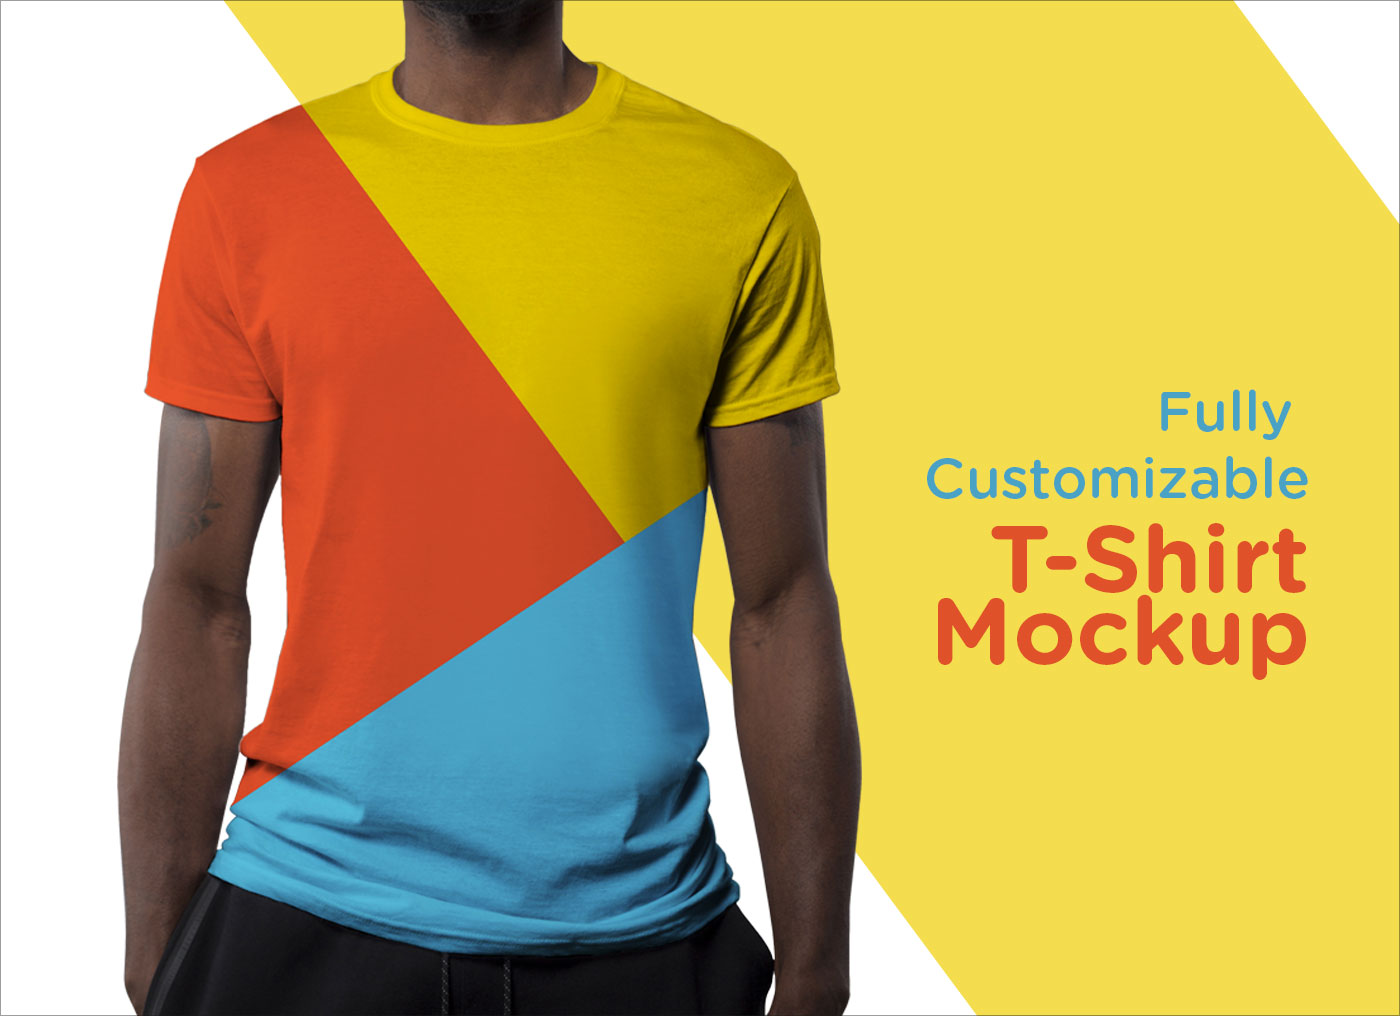 Free-Fully-Customizable-T-Shirt-Mockup-PSD-2